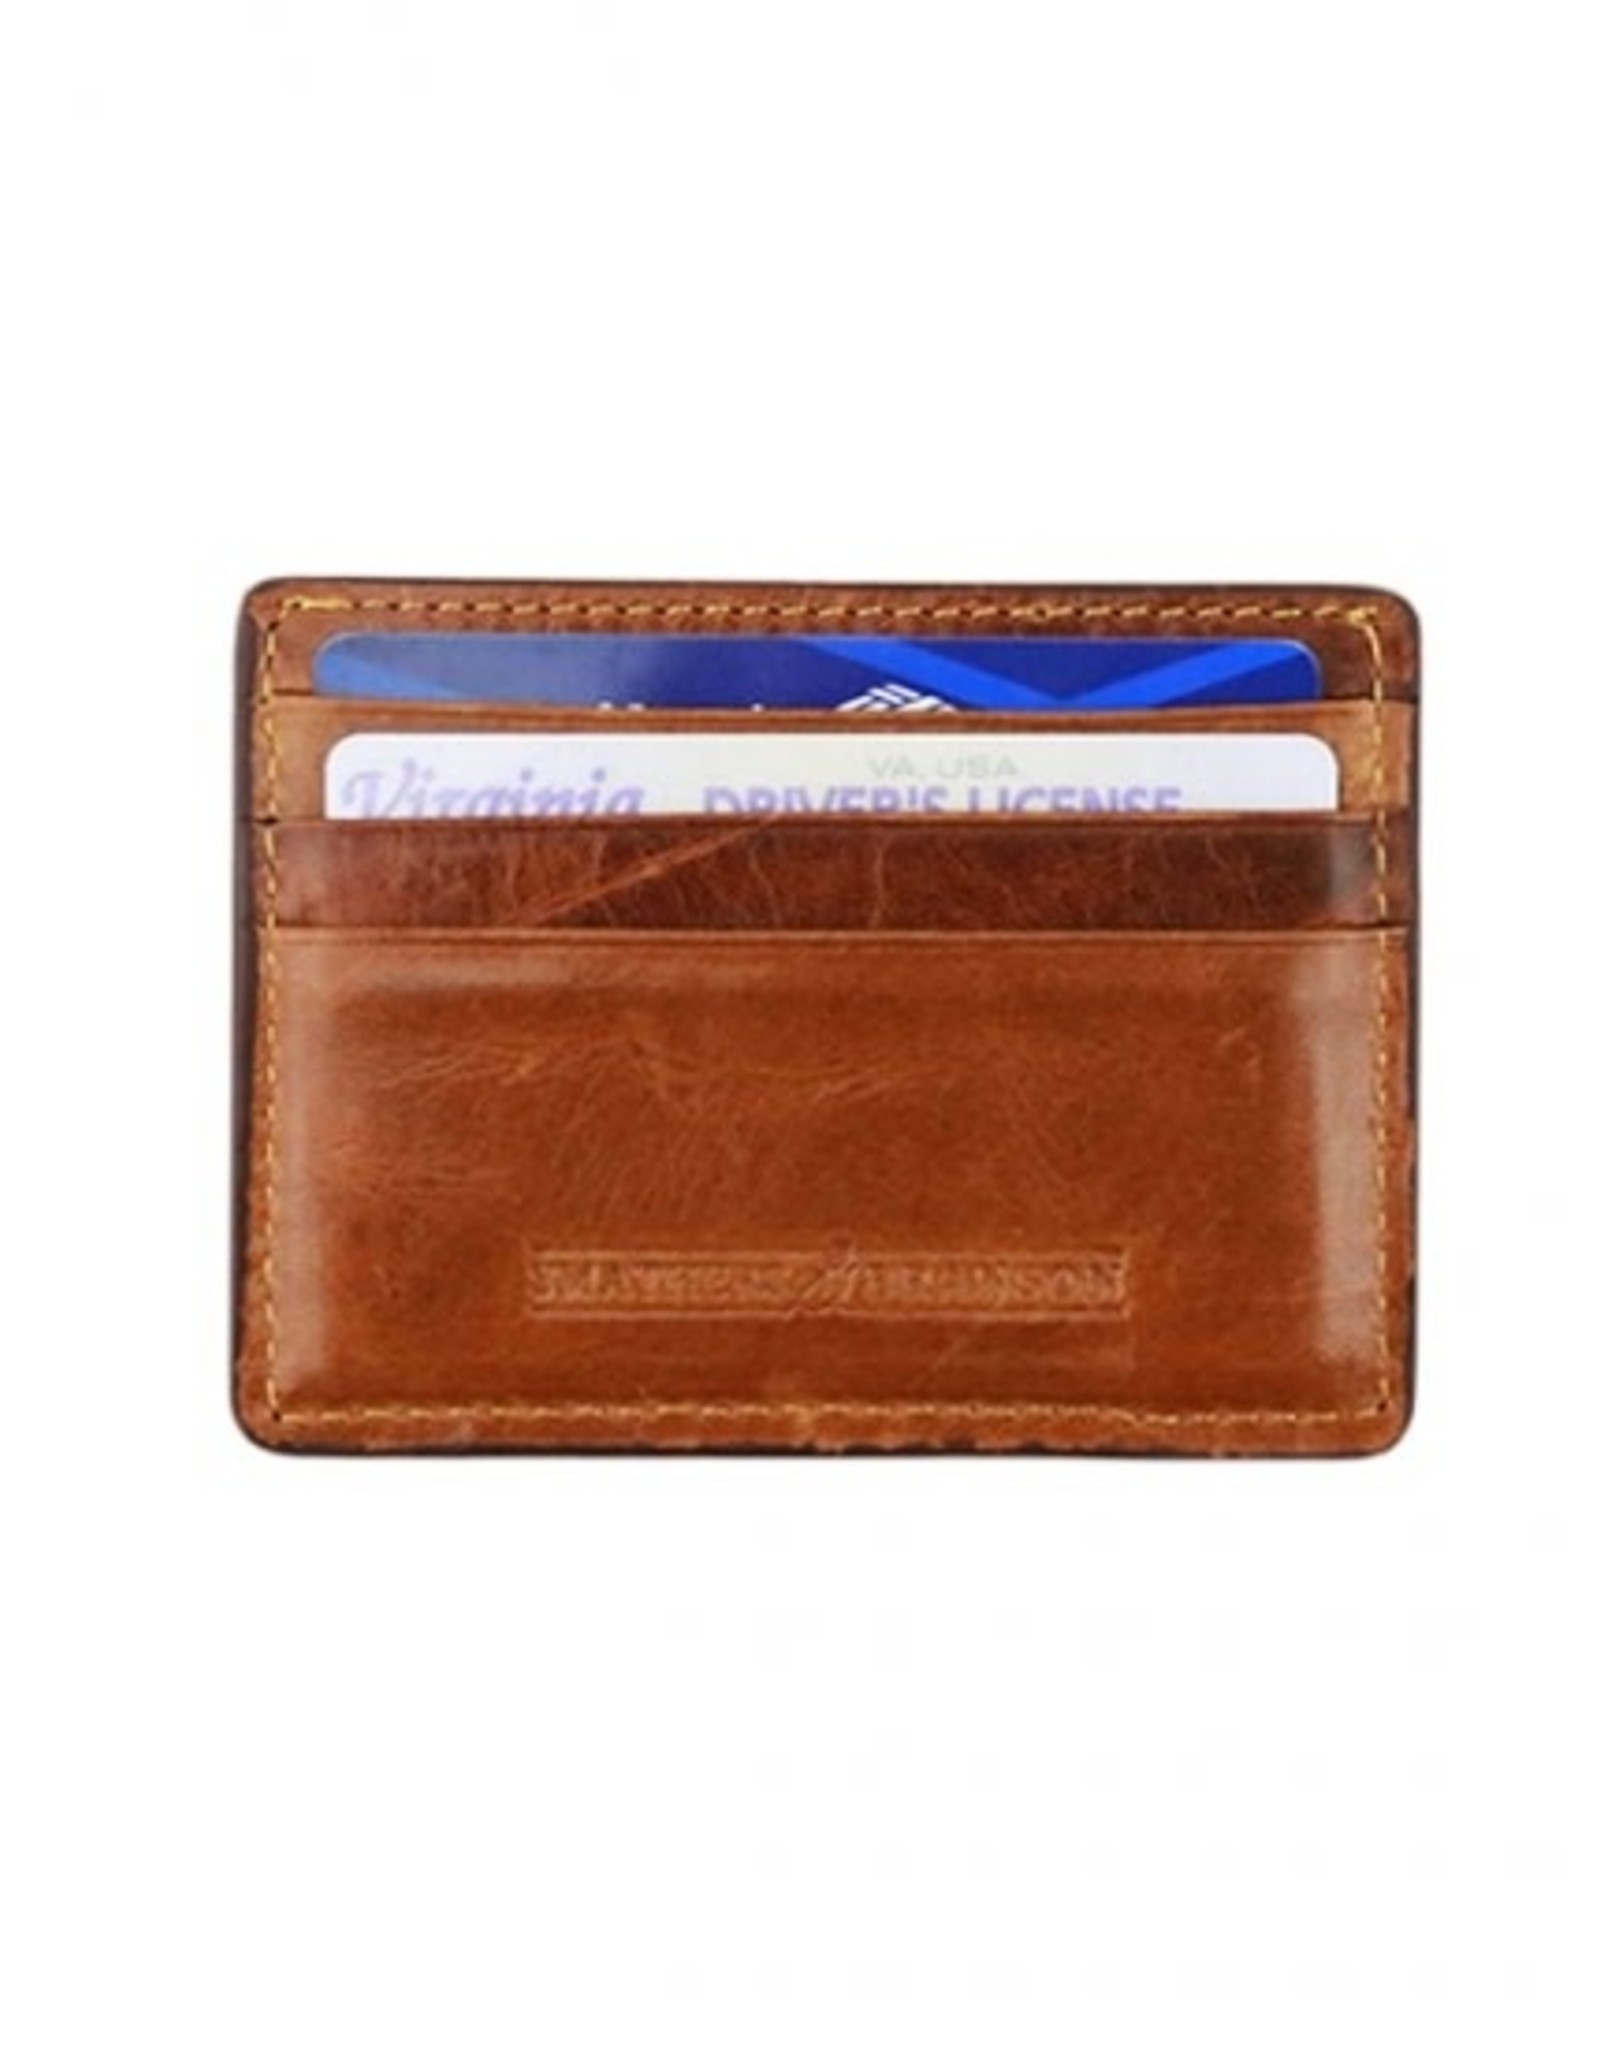 Smathers & Branson Smather's & Branson Credit Card Wallet